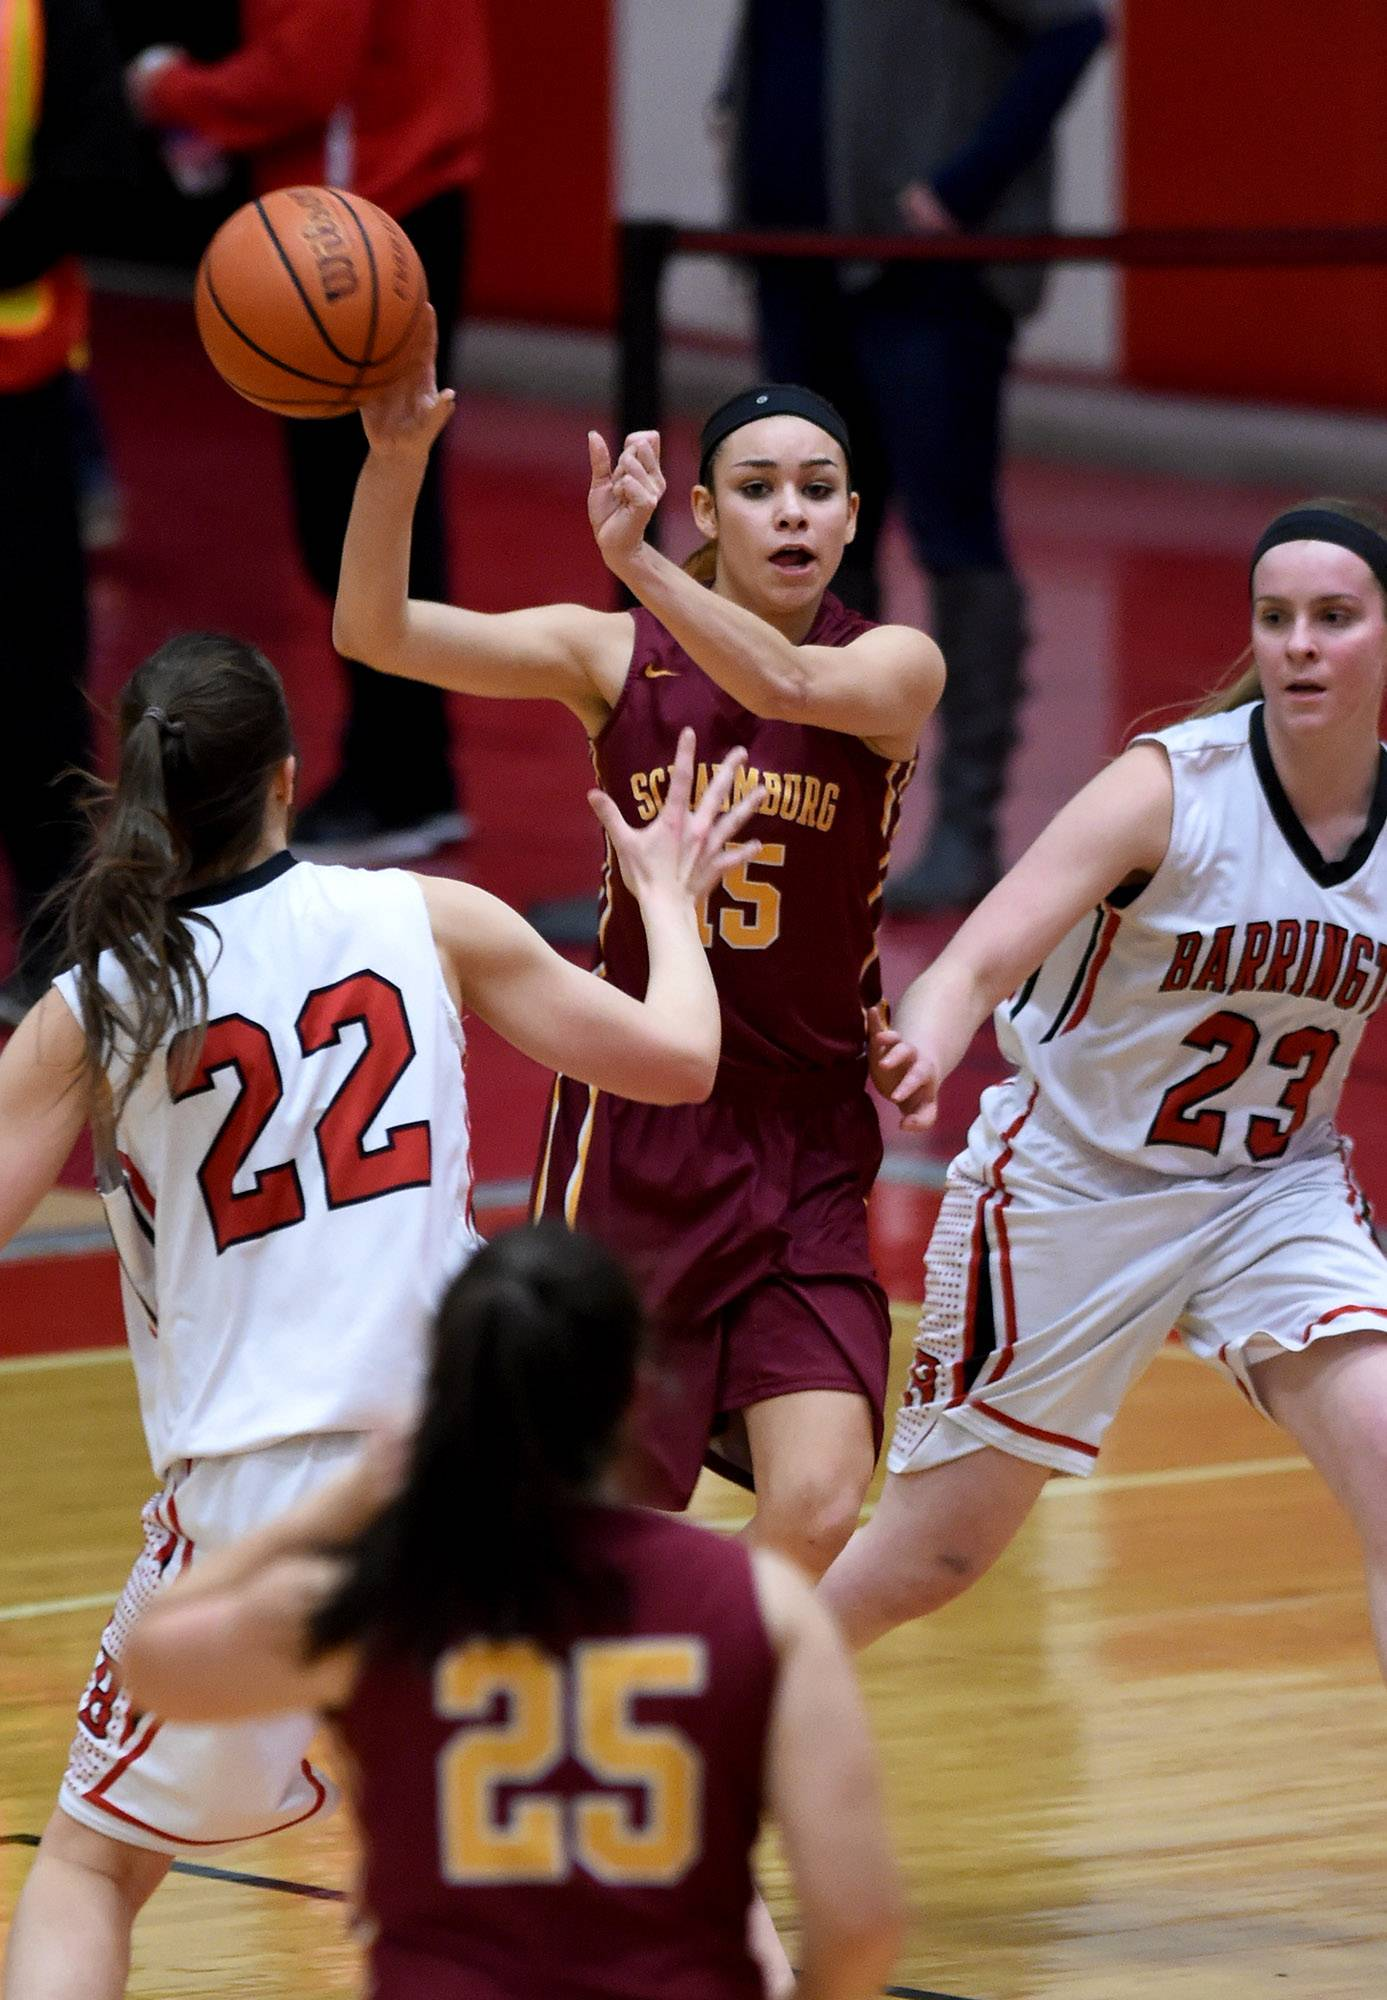 Schaumburg's Emmalyn Aguilar (15) gets doubled teamed in the corner and has to pass to teammate Abigail Paolicchi on Friday at Barrington.